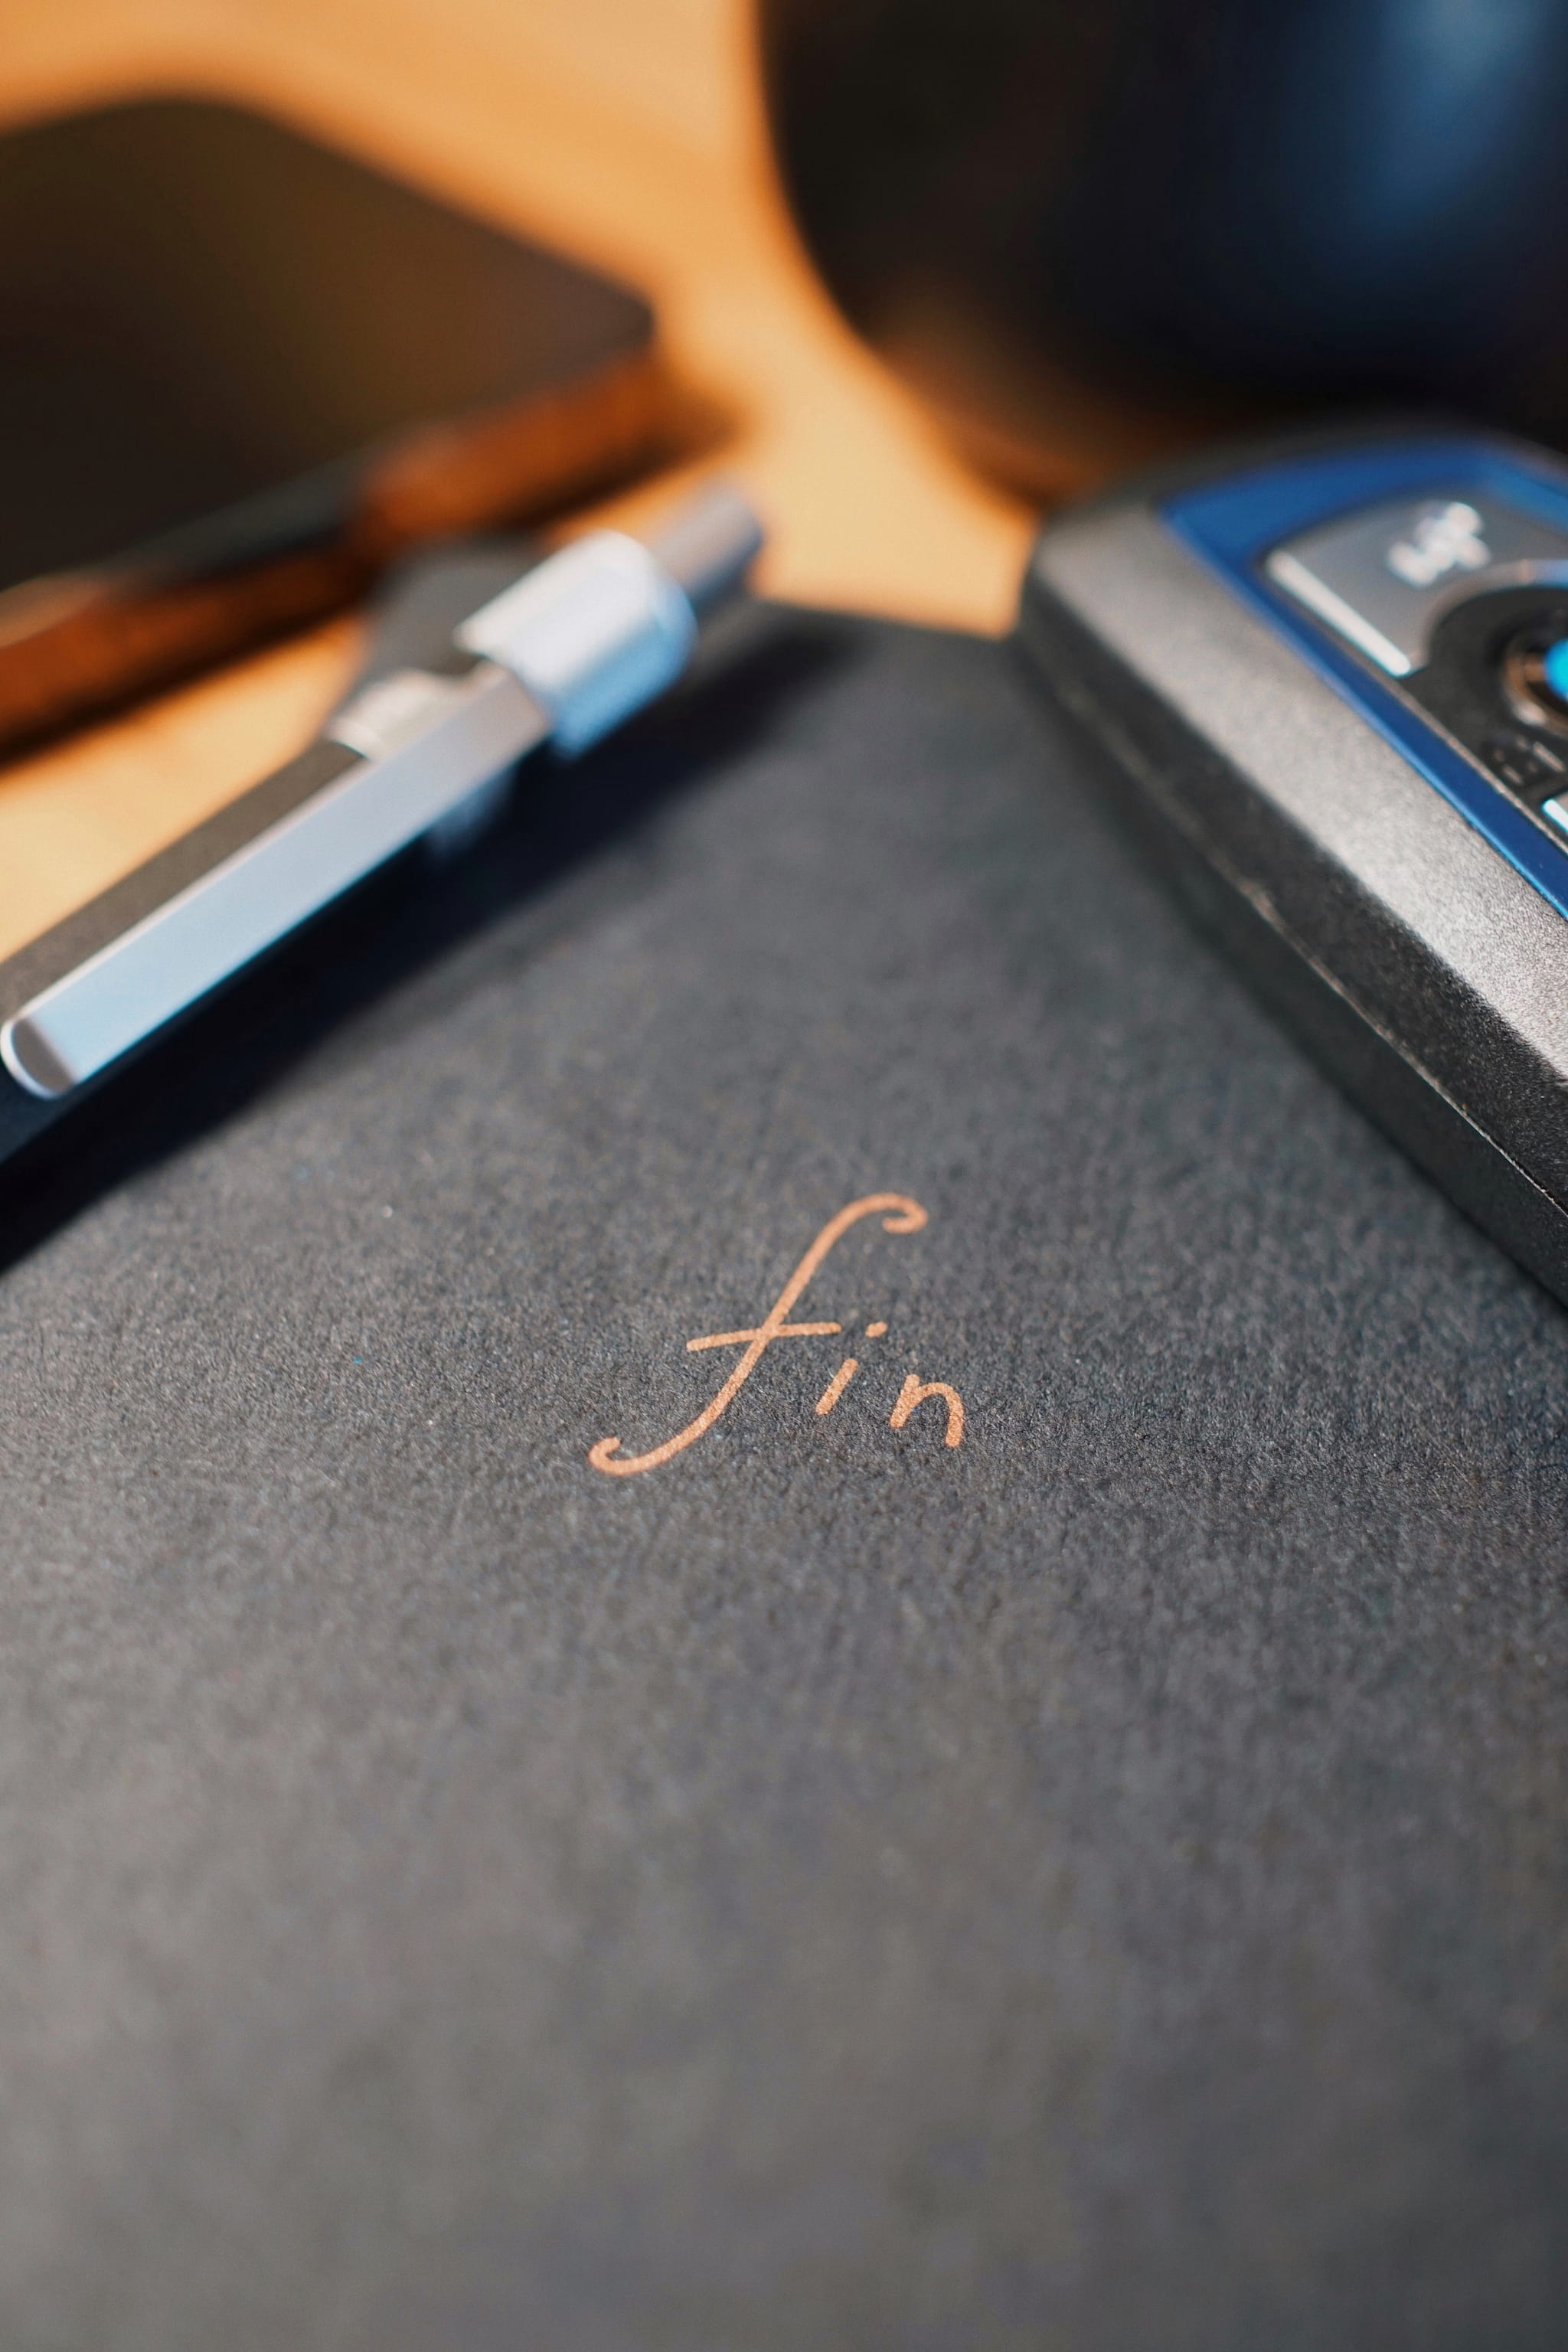 Fin productivity journal notebook